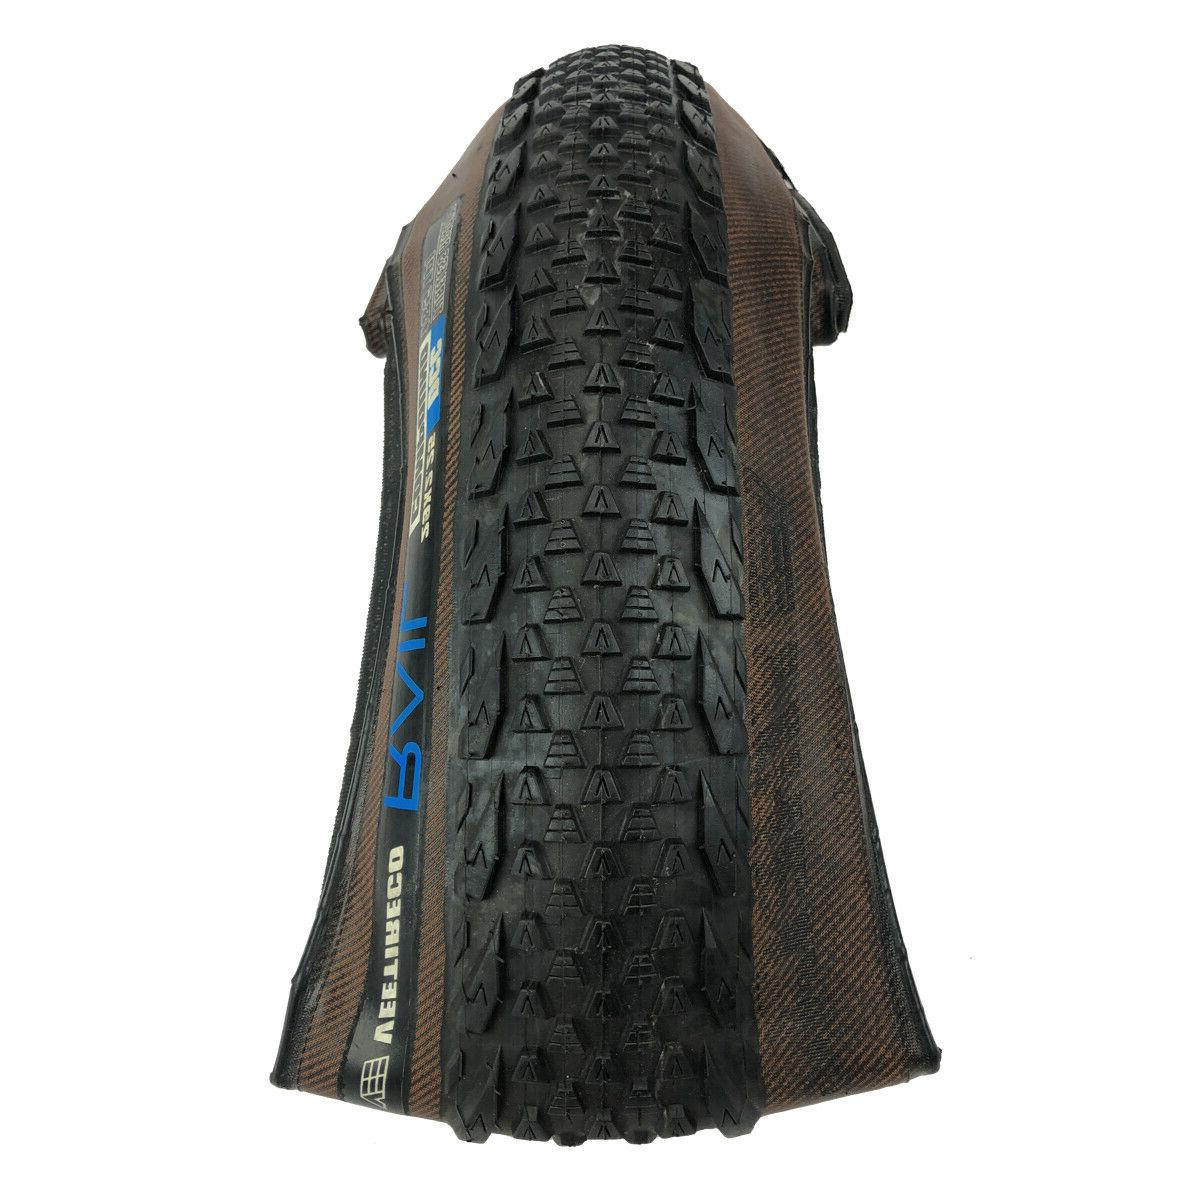 2 Vee 29x2.25 Tires Folding Bead Dual Control Compound Synthesis